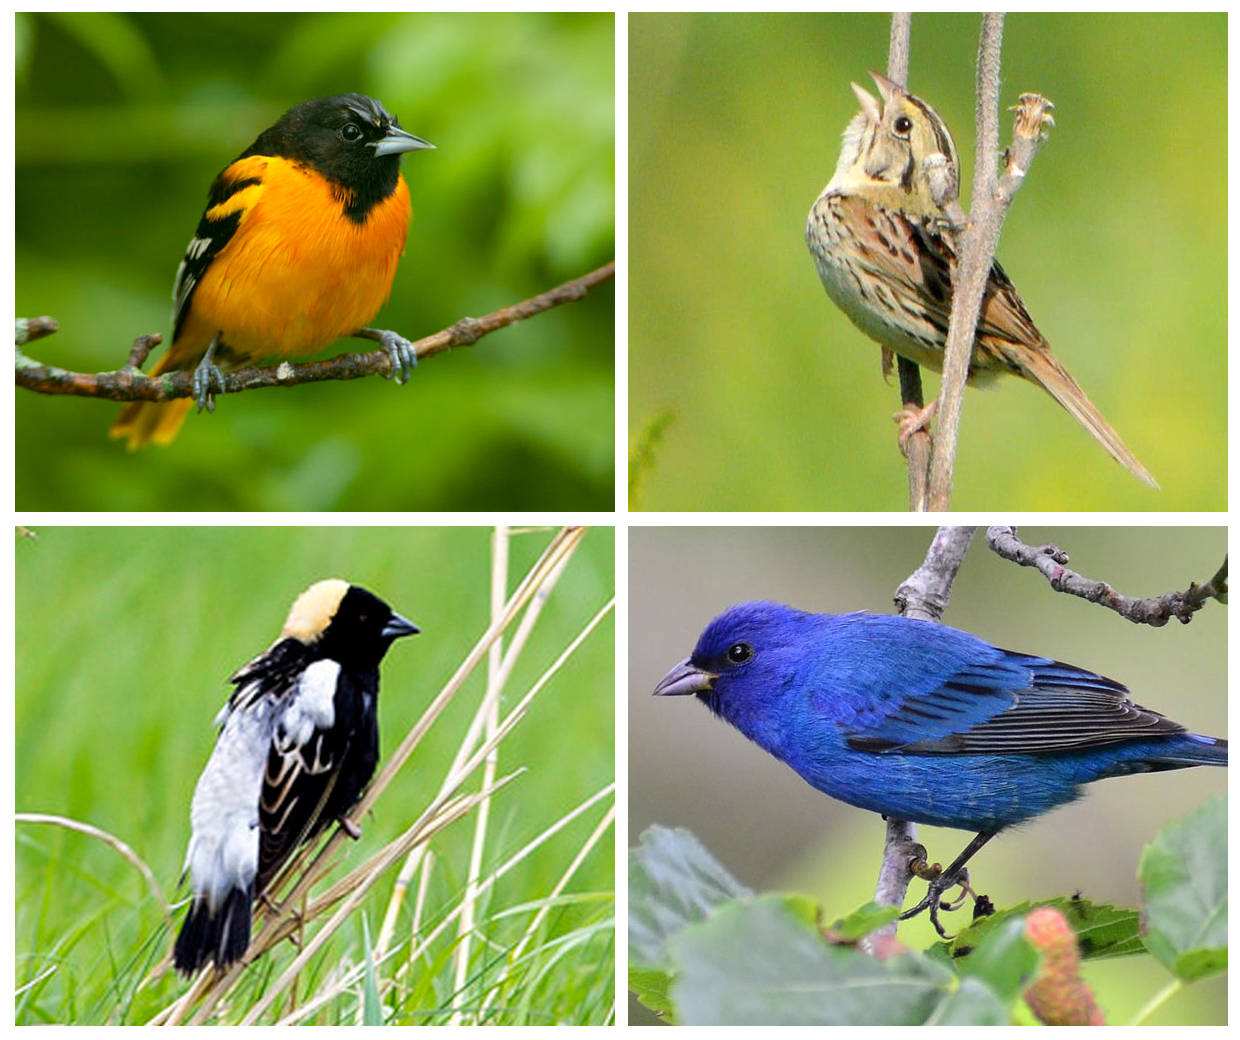 Clockwise from top left, Baltimore Oriole by Laura Gooch, Henslow's Sparrow by Andy Reago & Chrissy McClarren, Indigo Bunting by Gareth Rasberry, all from Creative Commons. Bottom left, Bobolink by Kris DaPra.